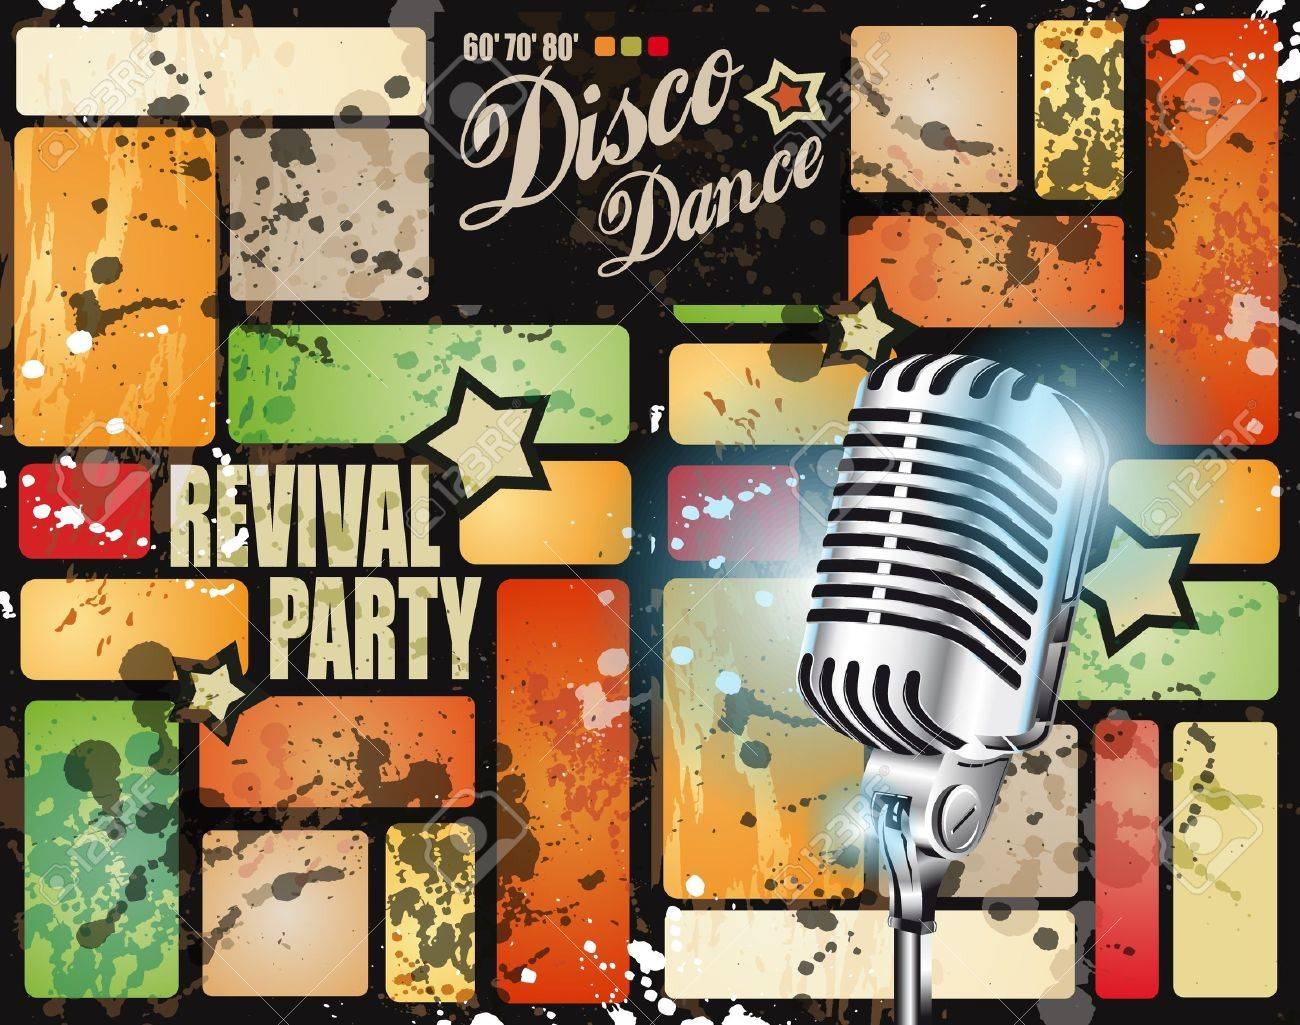 Retro' revival disco party flyer or poster for musical event Stock Vector - 9662599